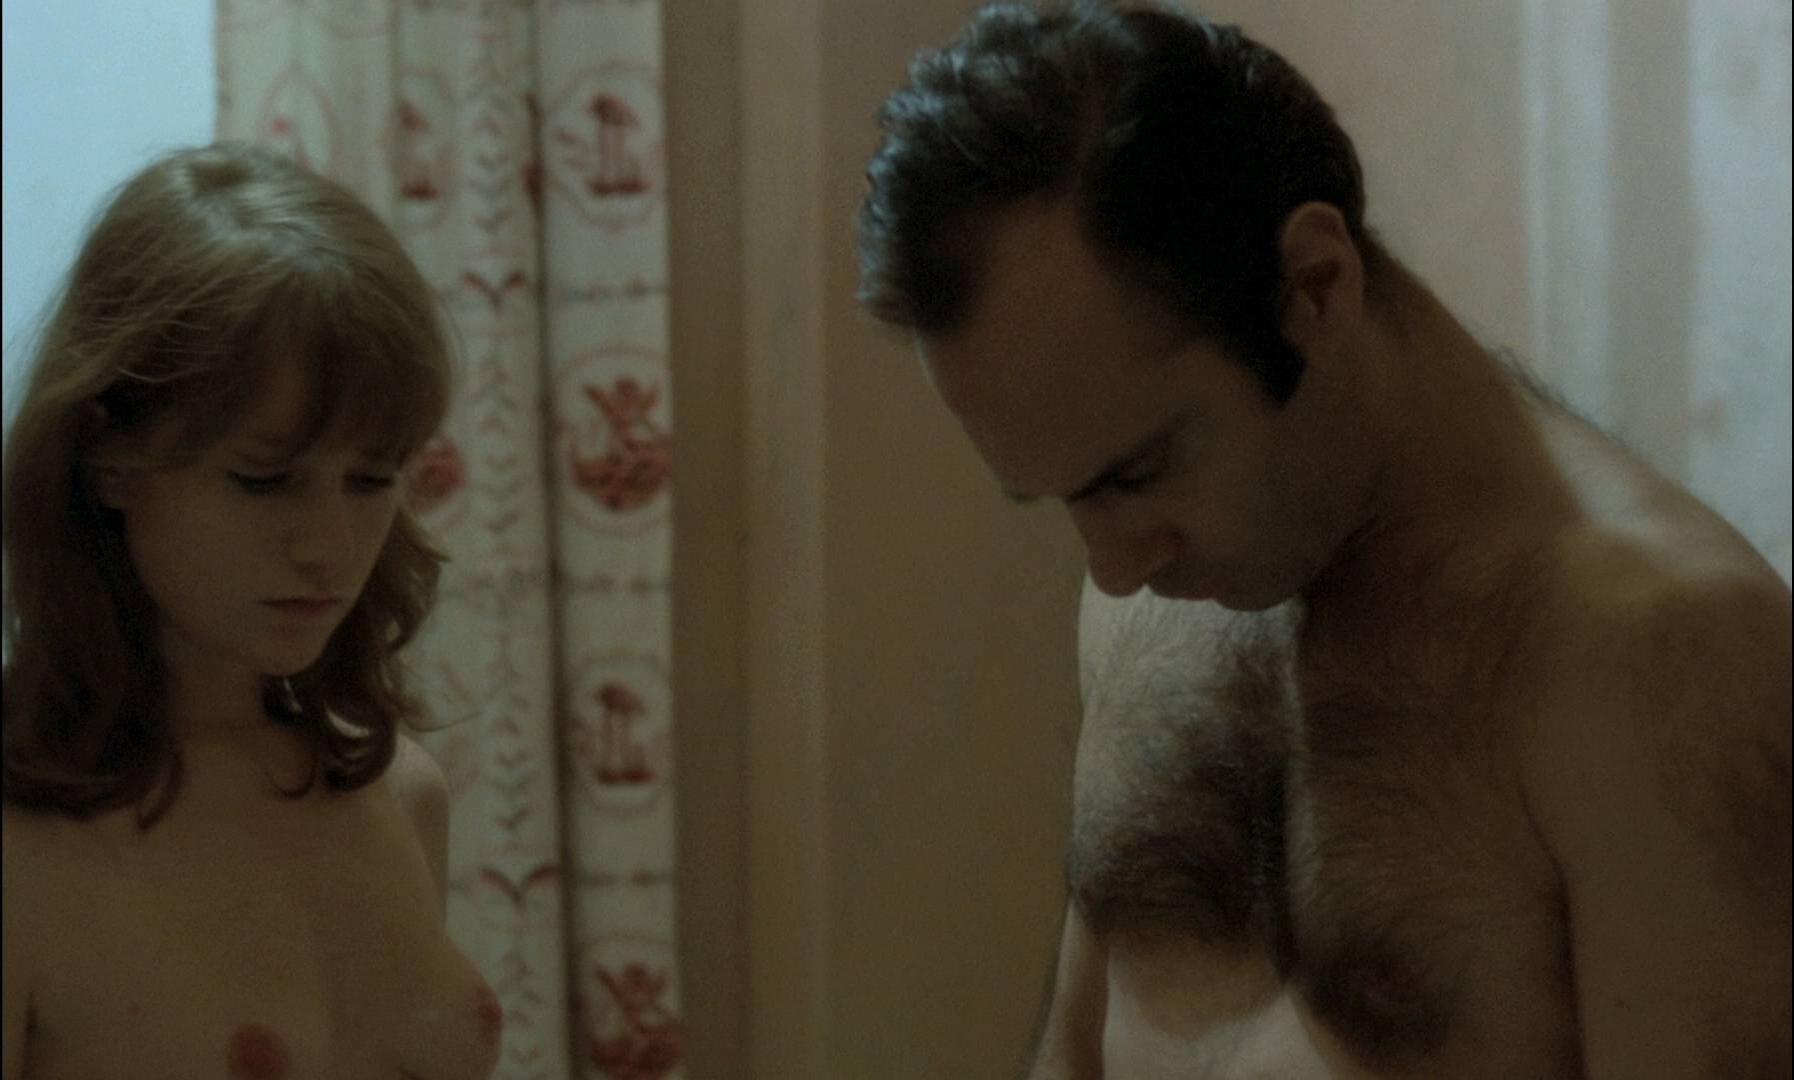 Isabelle Huppert nude, Agnes Rosier nude - Loulou (1980)